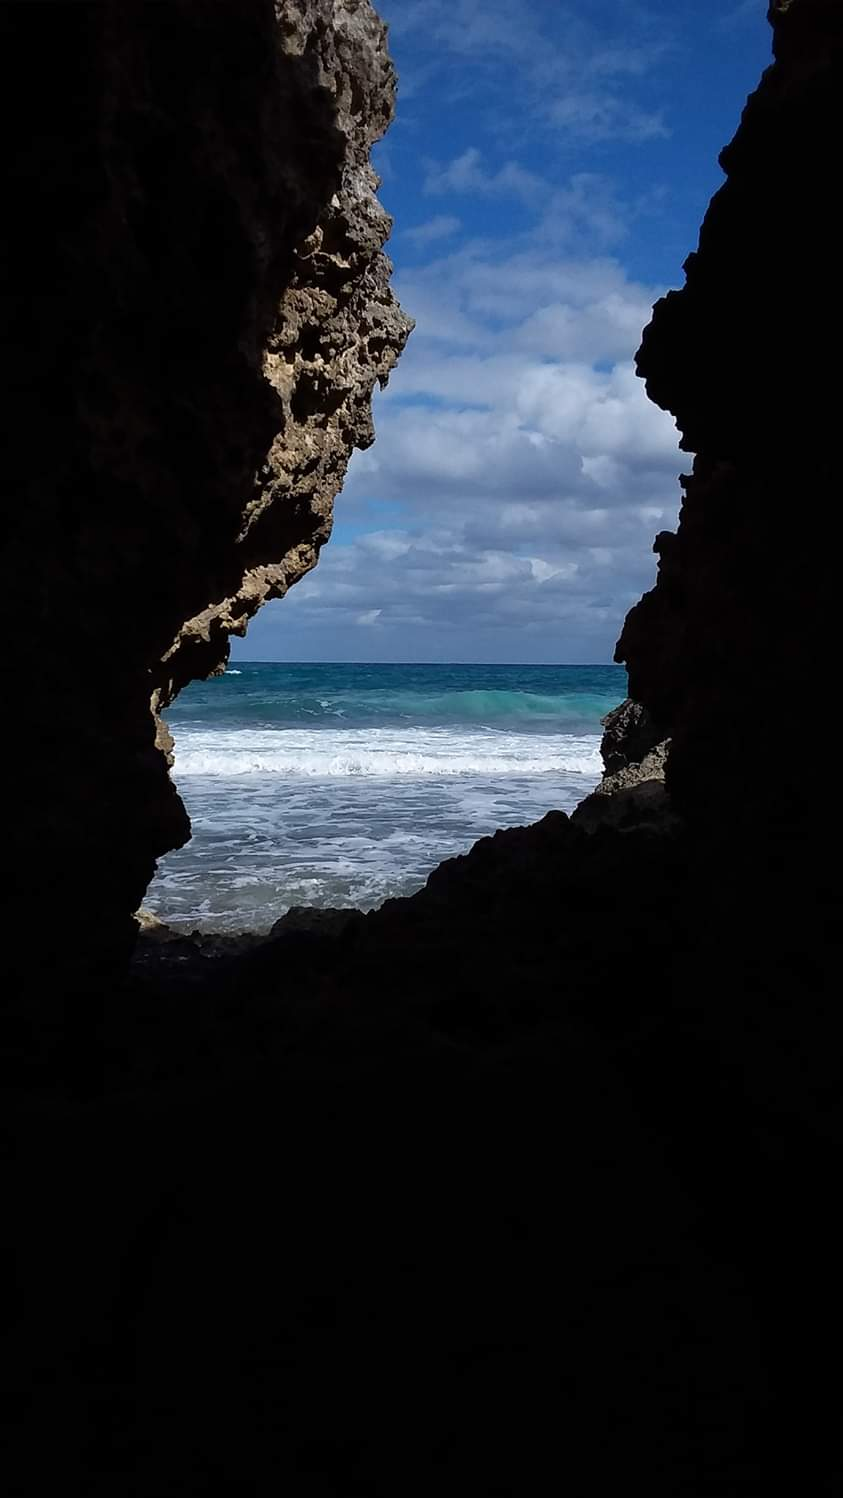 Grotte isla Mujeres